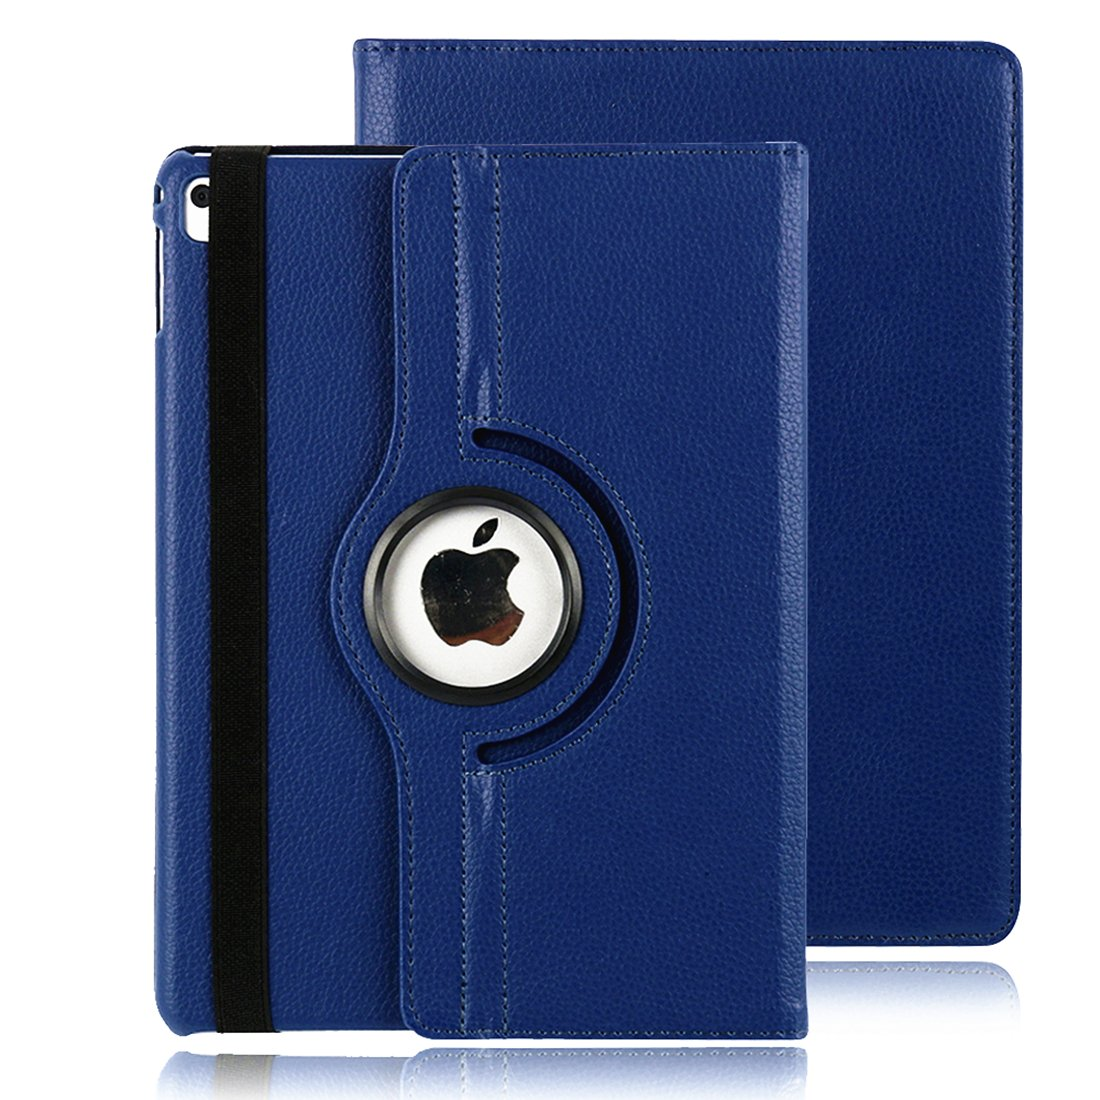 Xiaoai Apple iPad 2018 9.7/2017 9.7/iPad Air 2/iPad Air 9.7 inch Case,360 Degrees Rotating Multi Angles Screen Protective Stand with Auto Sleep/Wake Smart Cover (Blue)